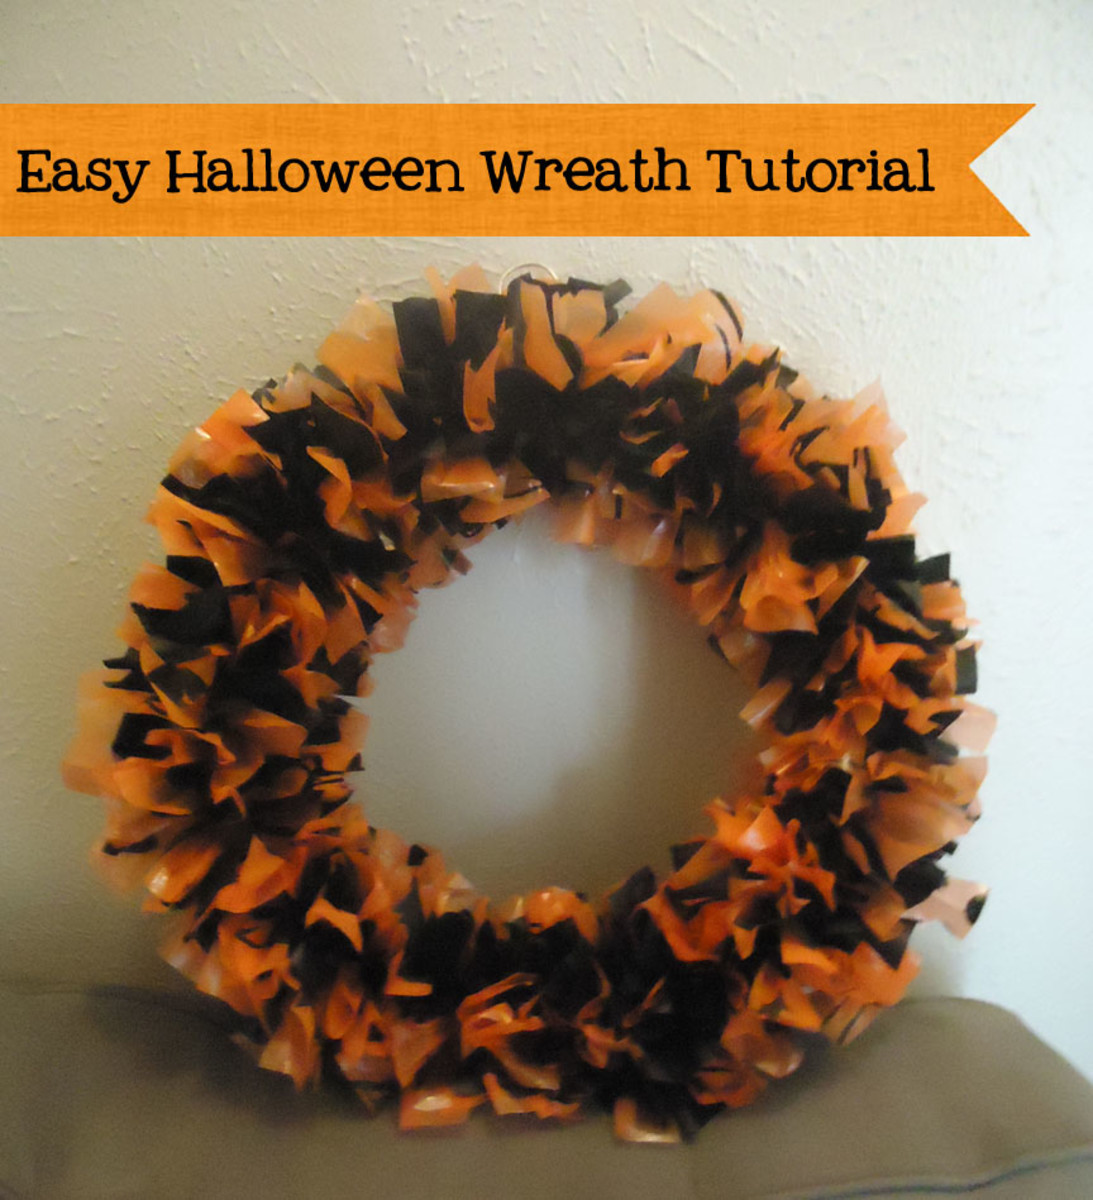 Easy and Frugal Halloween Wreath Tutorial